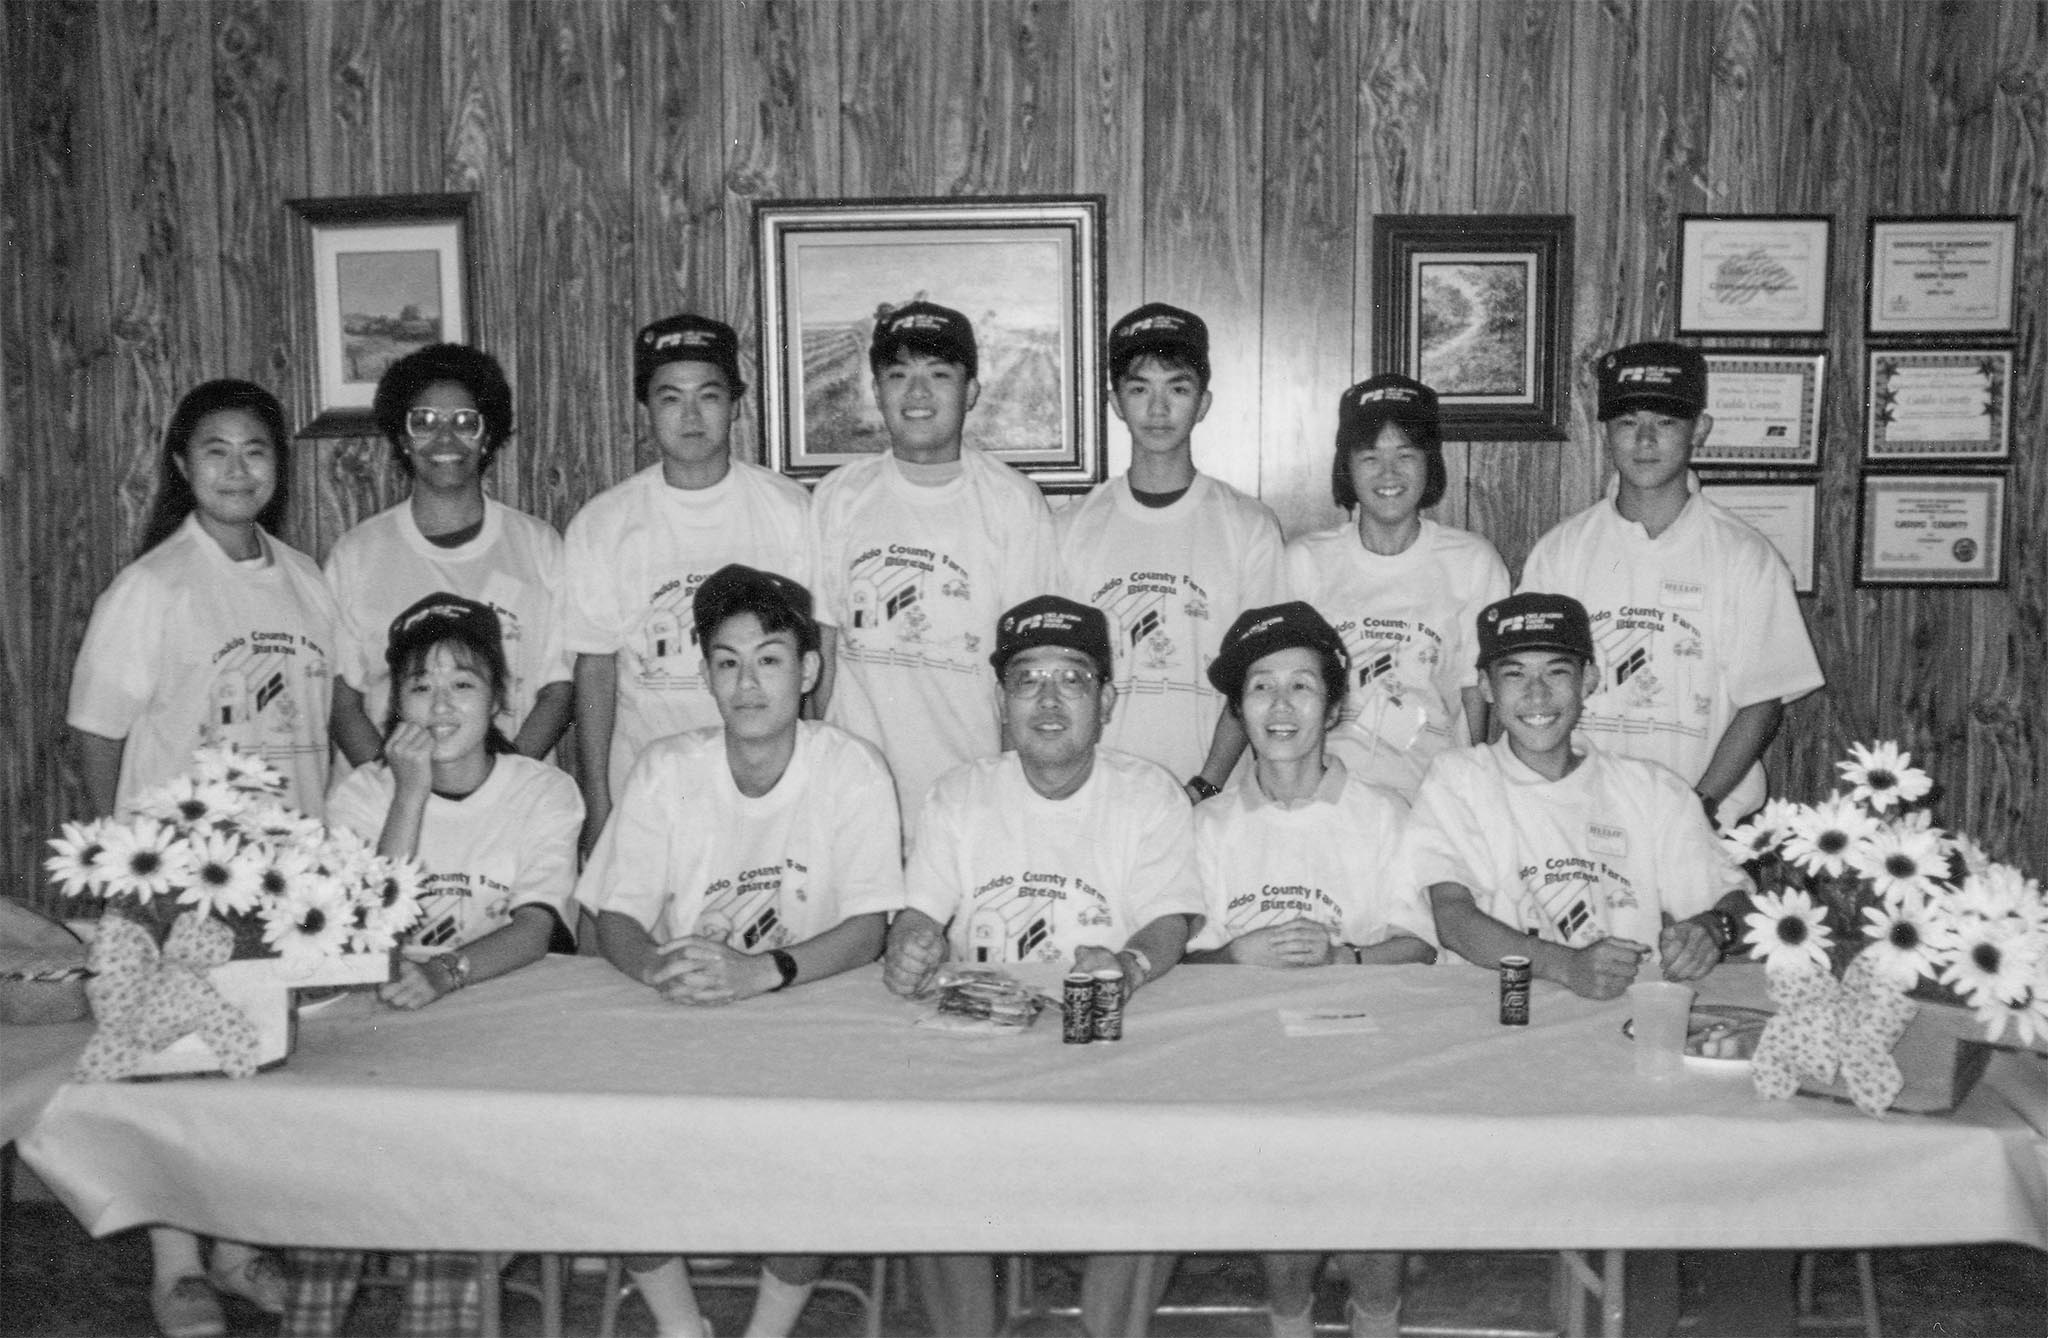 This 1994 photo includes program members from Japan after they enjoyed a home-prepared meal of Indian tacos and exchanged gifts during a stop at the Caddo County Farm Bureau office. The group was also presented with T-shirts and Farm Bureau caps as well as seedless watermelons provided by Sen. Bruce Price. The visiting group presented fans, handkerchiefs and buttons promoting Japan to the county Farm Bureau members.